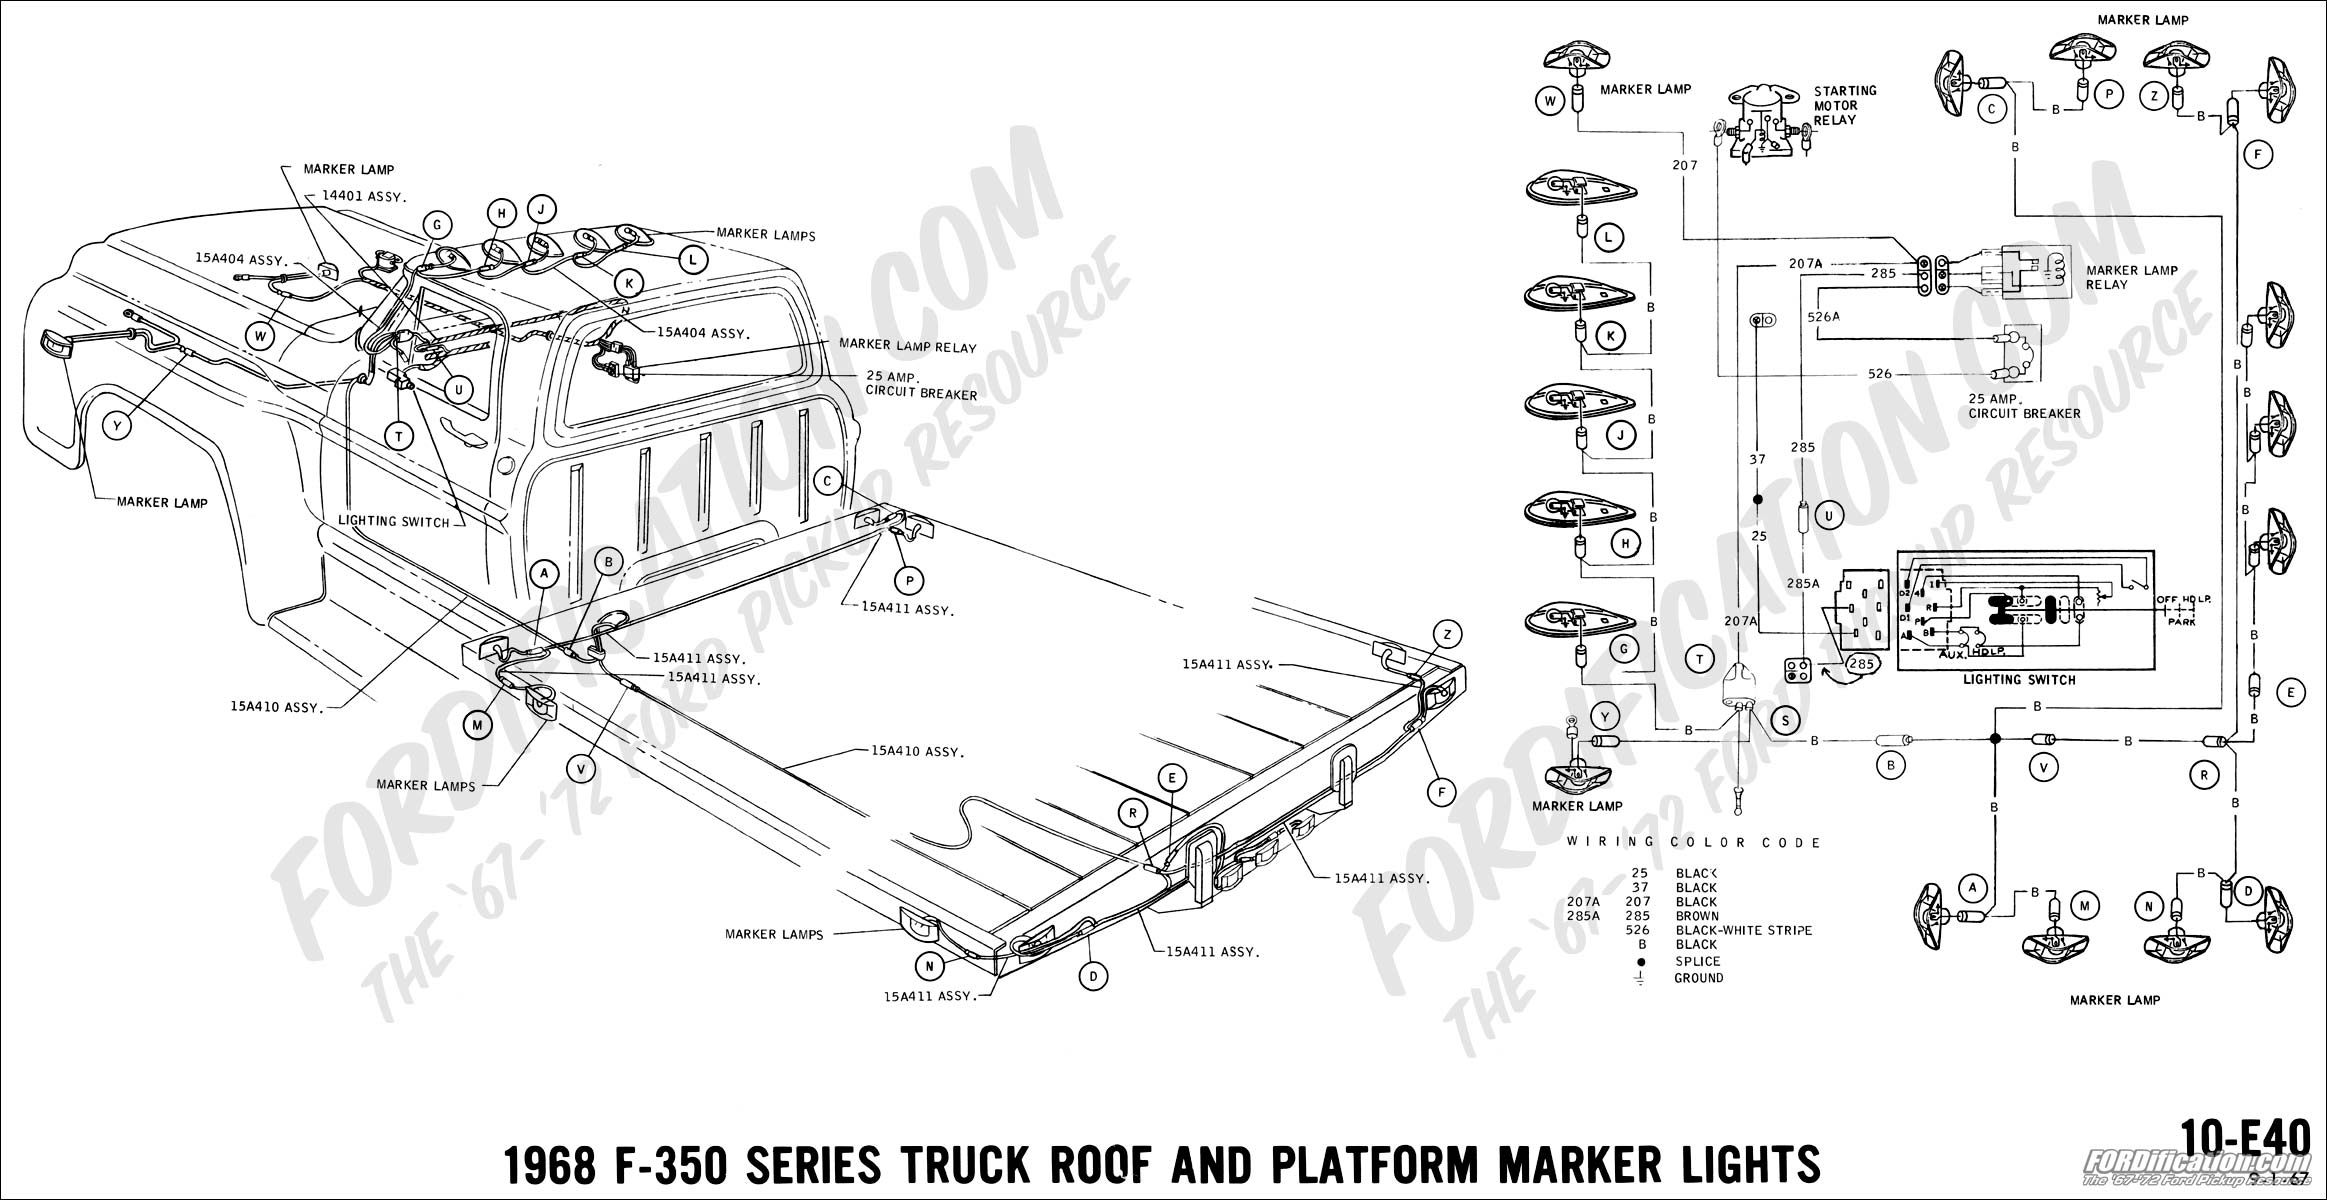 92 Chevy Truck Wiring Diagram together with Viewtopic additionally Water Heater Wiring Diagram Get Free Image About moreover 2001 Ford Taurus Fuse Box Diagram Additionally Ignition Wiring moreover ETrack Kit. on wiring on dodge flatbed